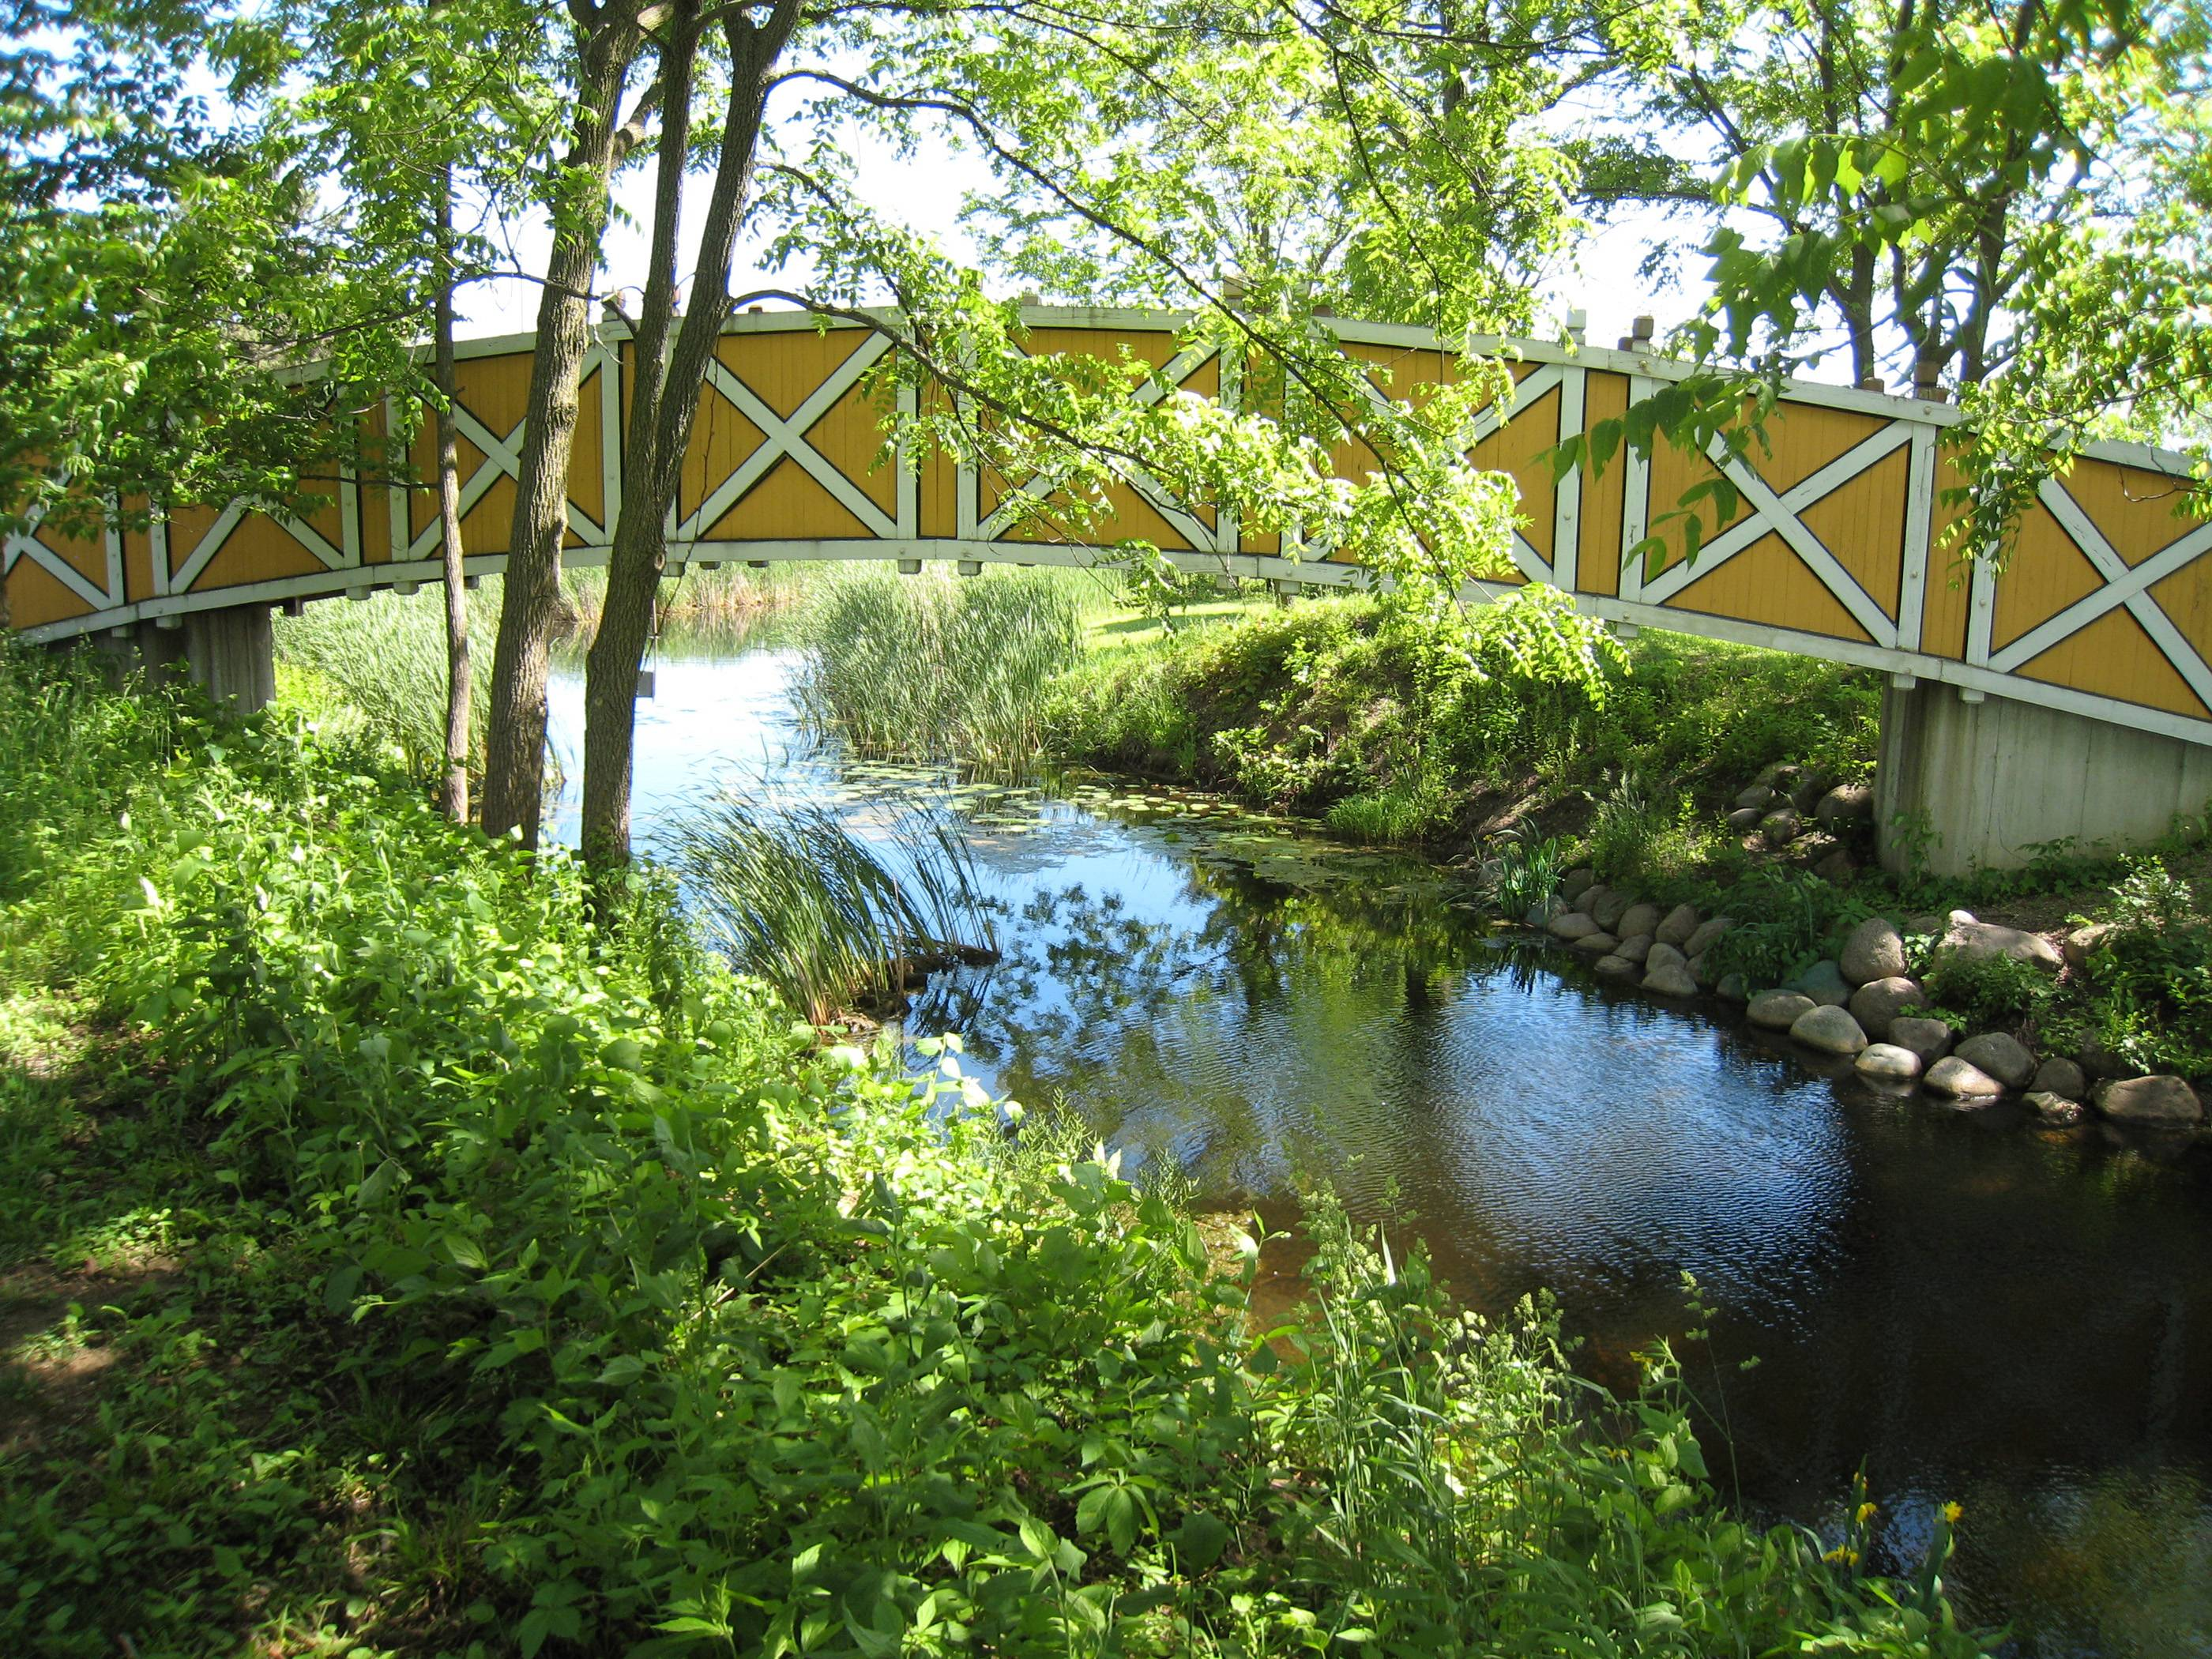 Today, I rode my bike into St. James Farm (now maintained by the DuPage Forest Preserve). I took pictures of lots of beautiful scenes, including this yellow bridge over a creek.